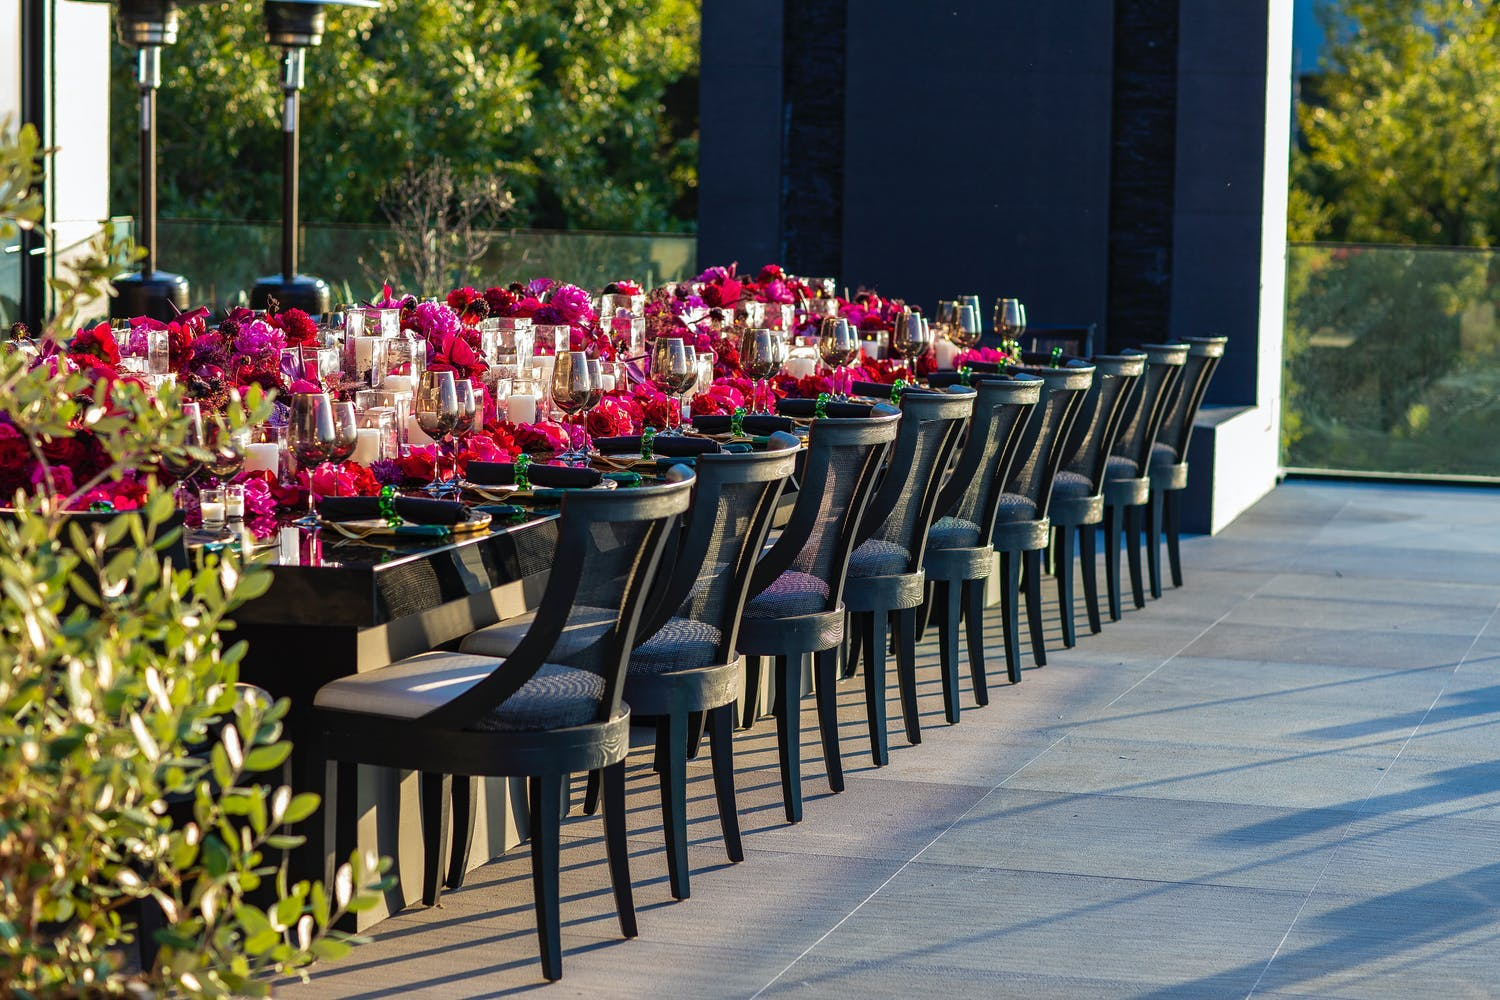 Intimate Birthday Tablescape With Hot Pink Florals and Cuisine | PartySlate